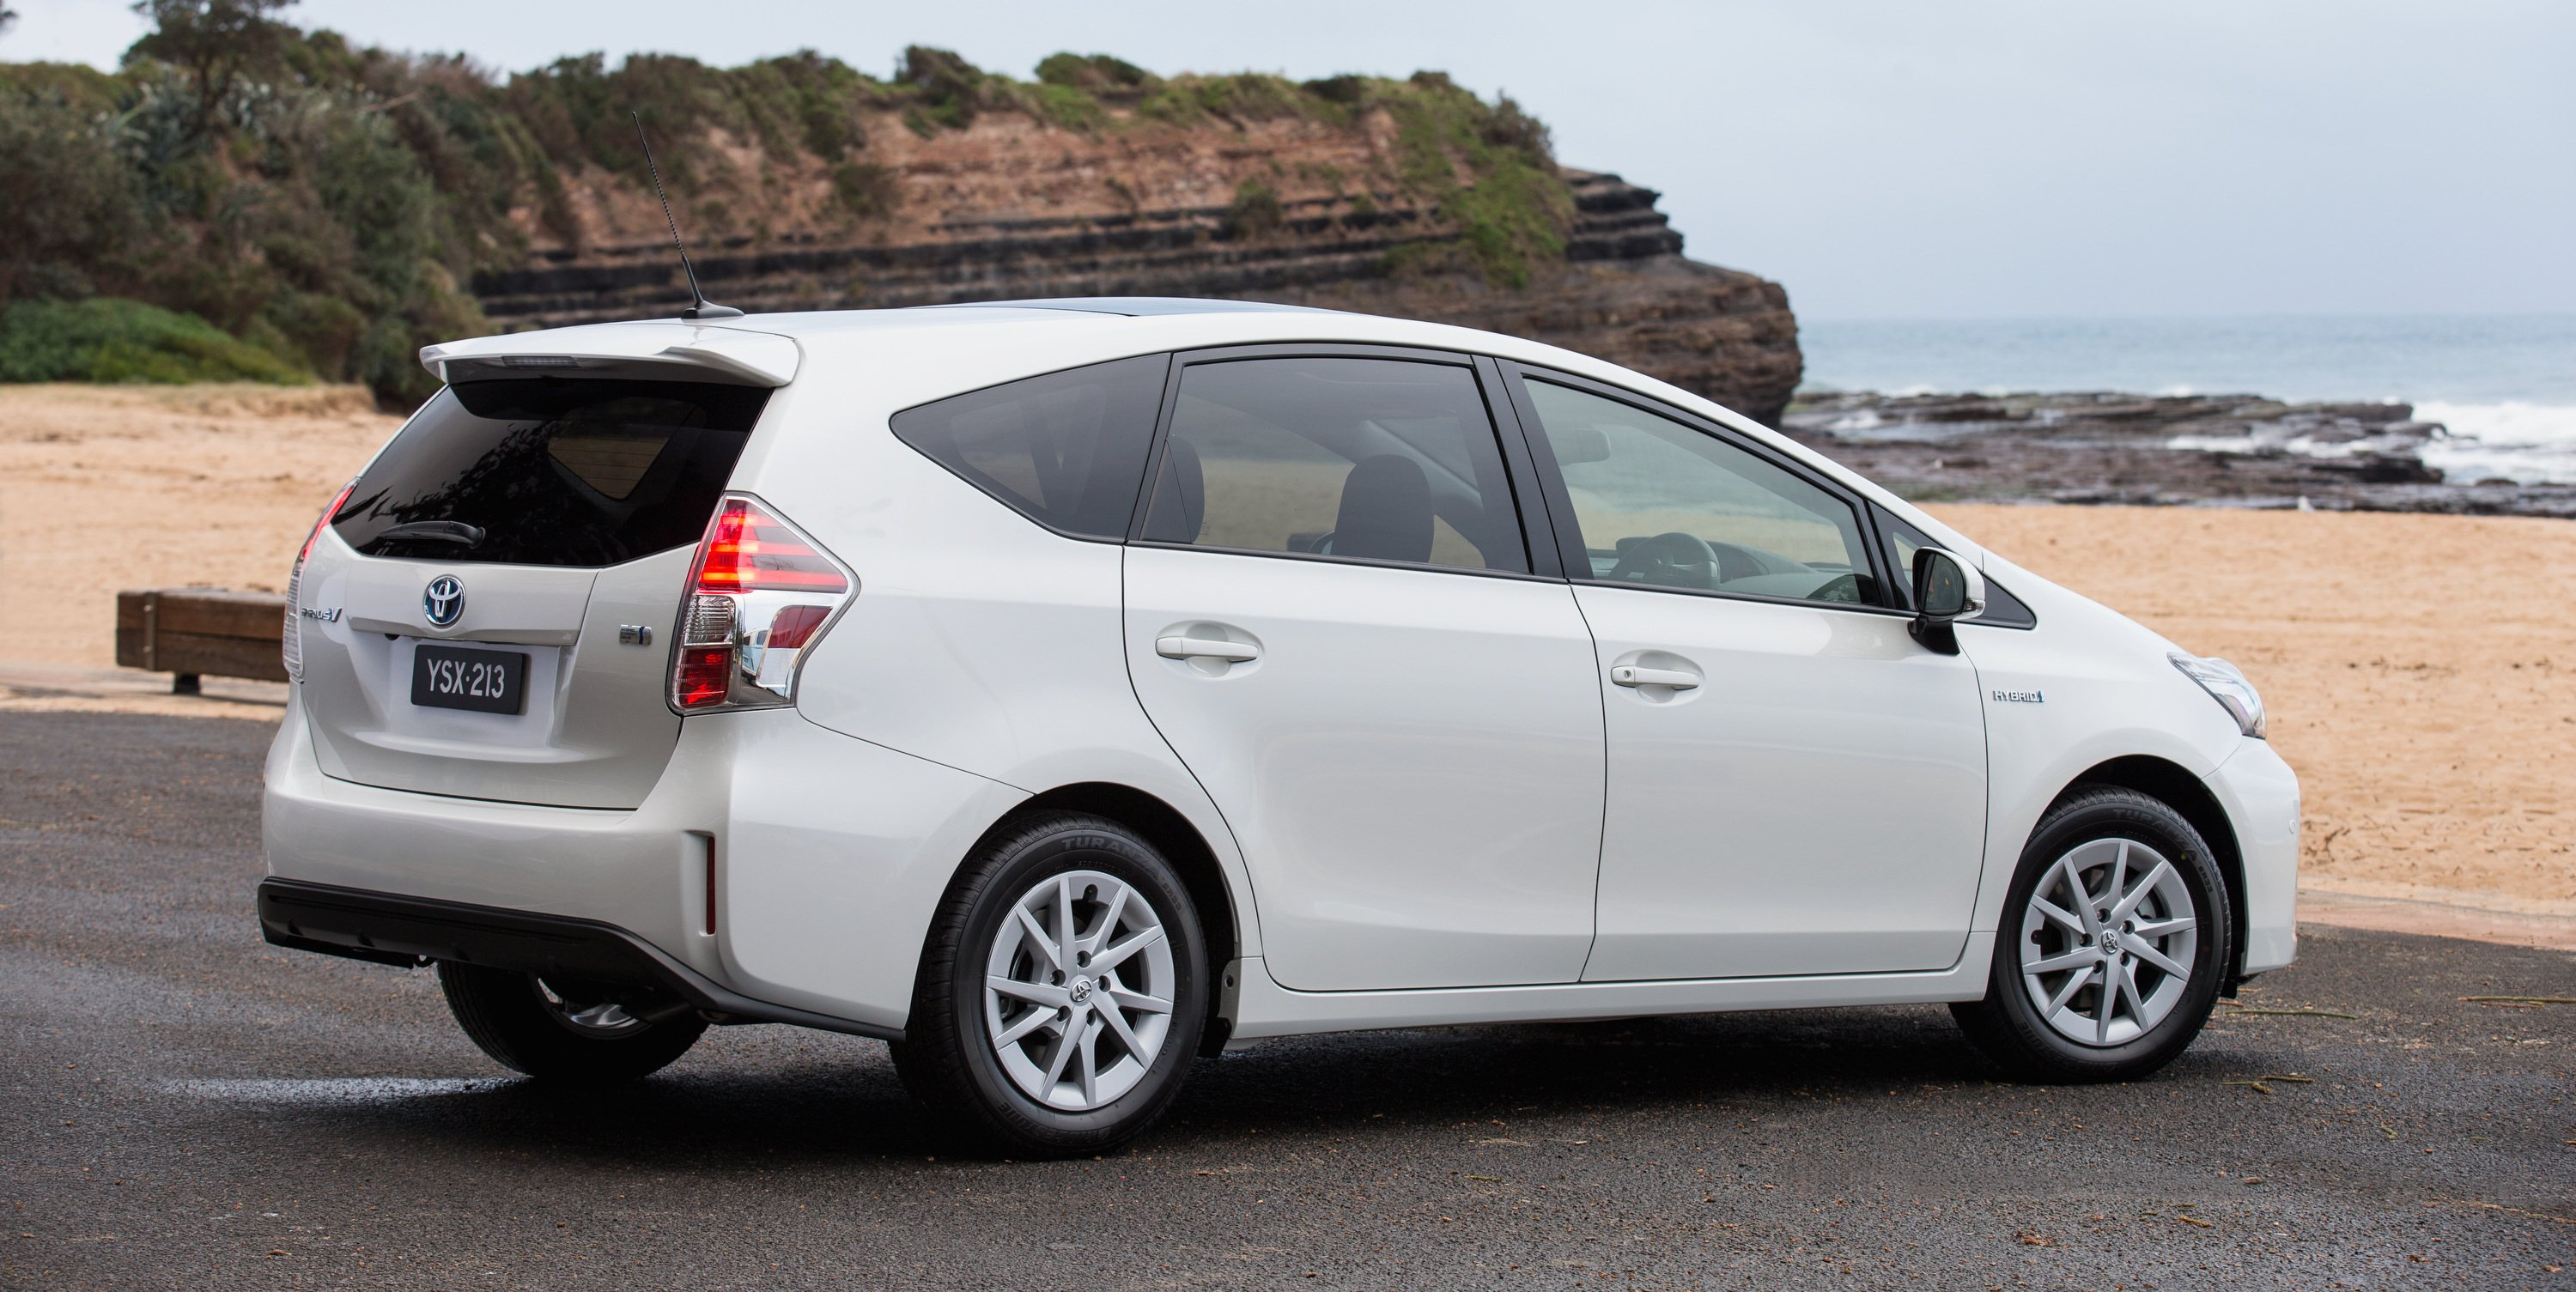 2015 toyota prius v pricing and specifications photos 1 of 7. Black Bedroom Furniture Sets. Home Design Ideas